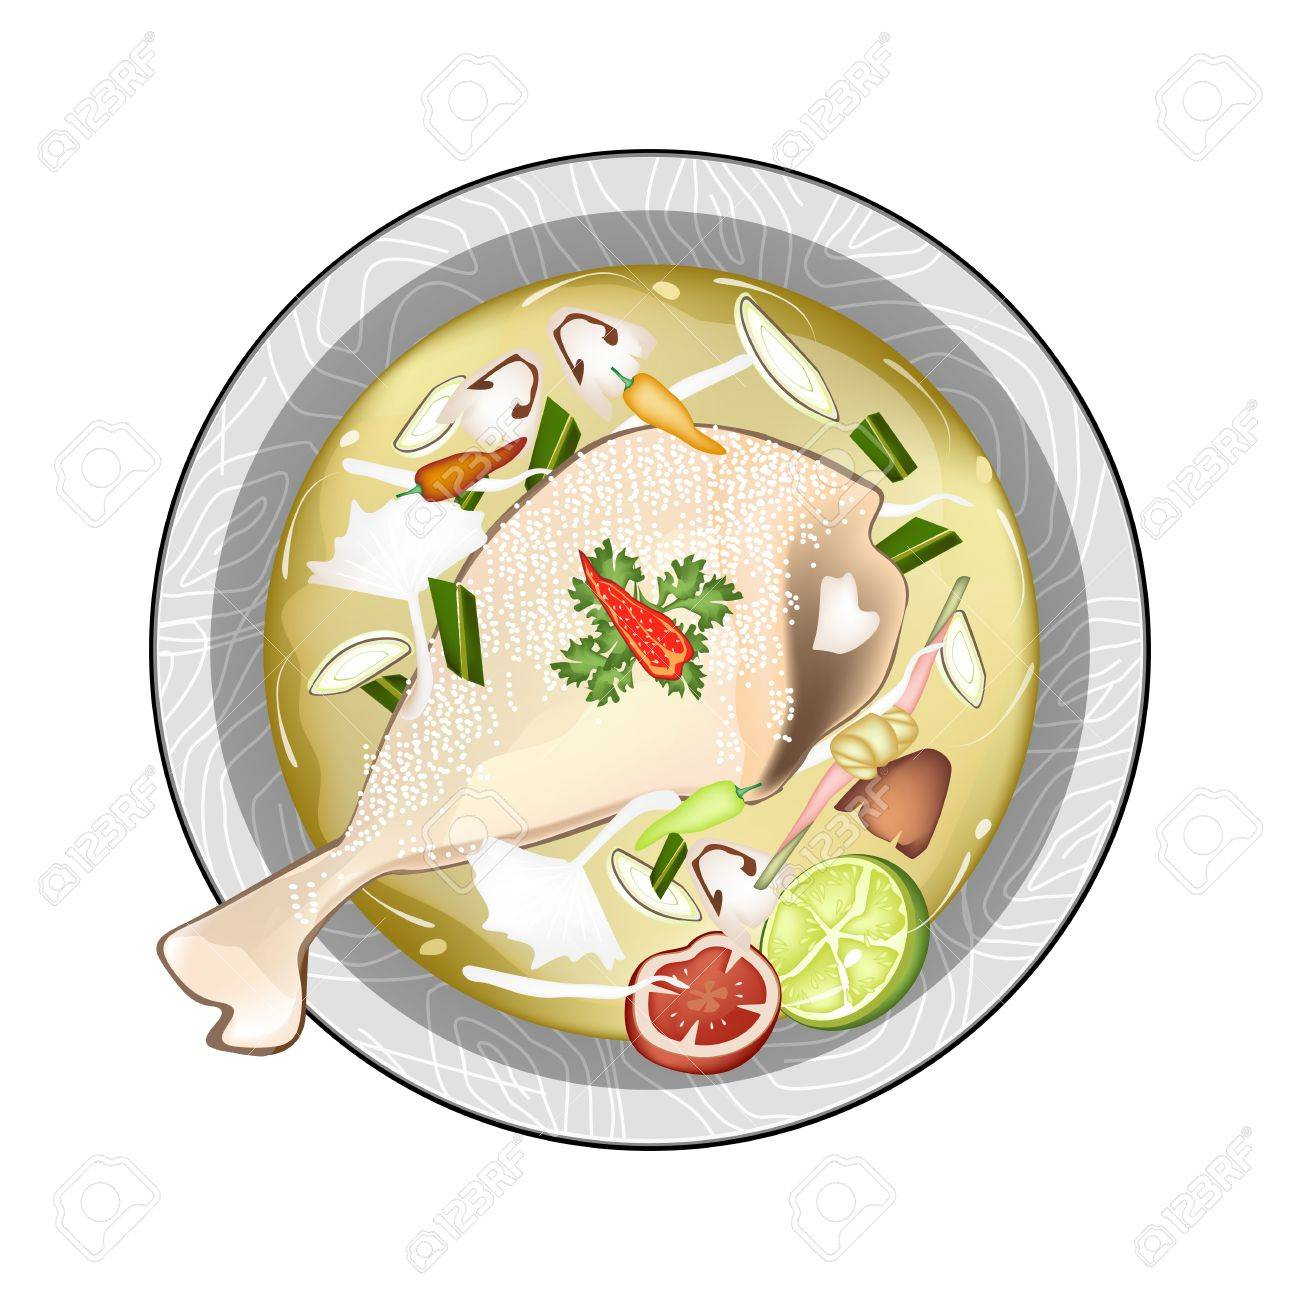 hight resolution of thai cuisine chicken tom yum or thai spicy and sour soup with chickens mushroom